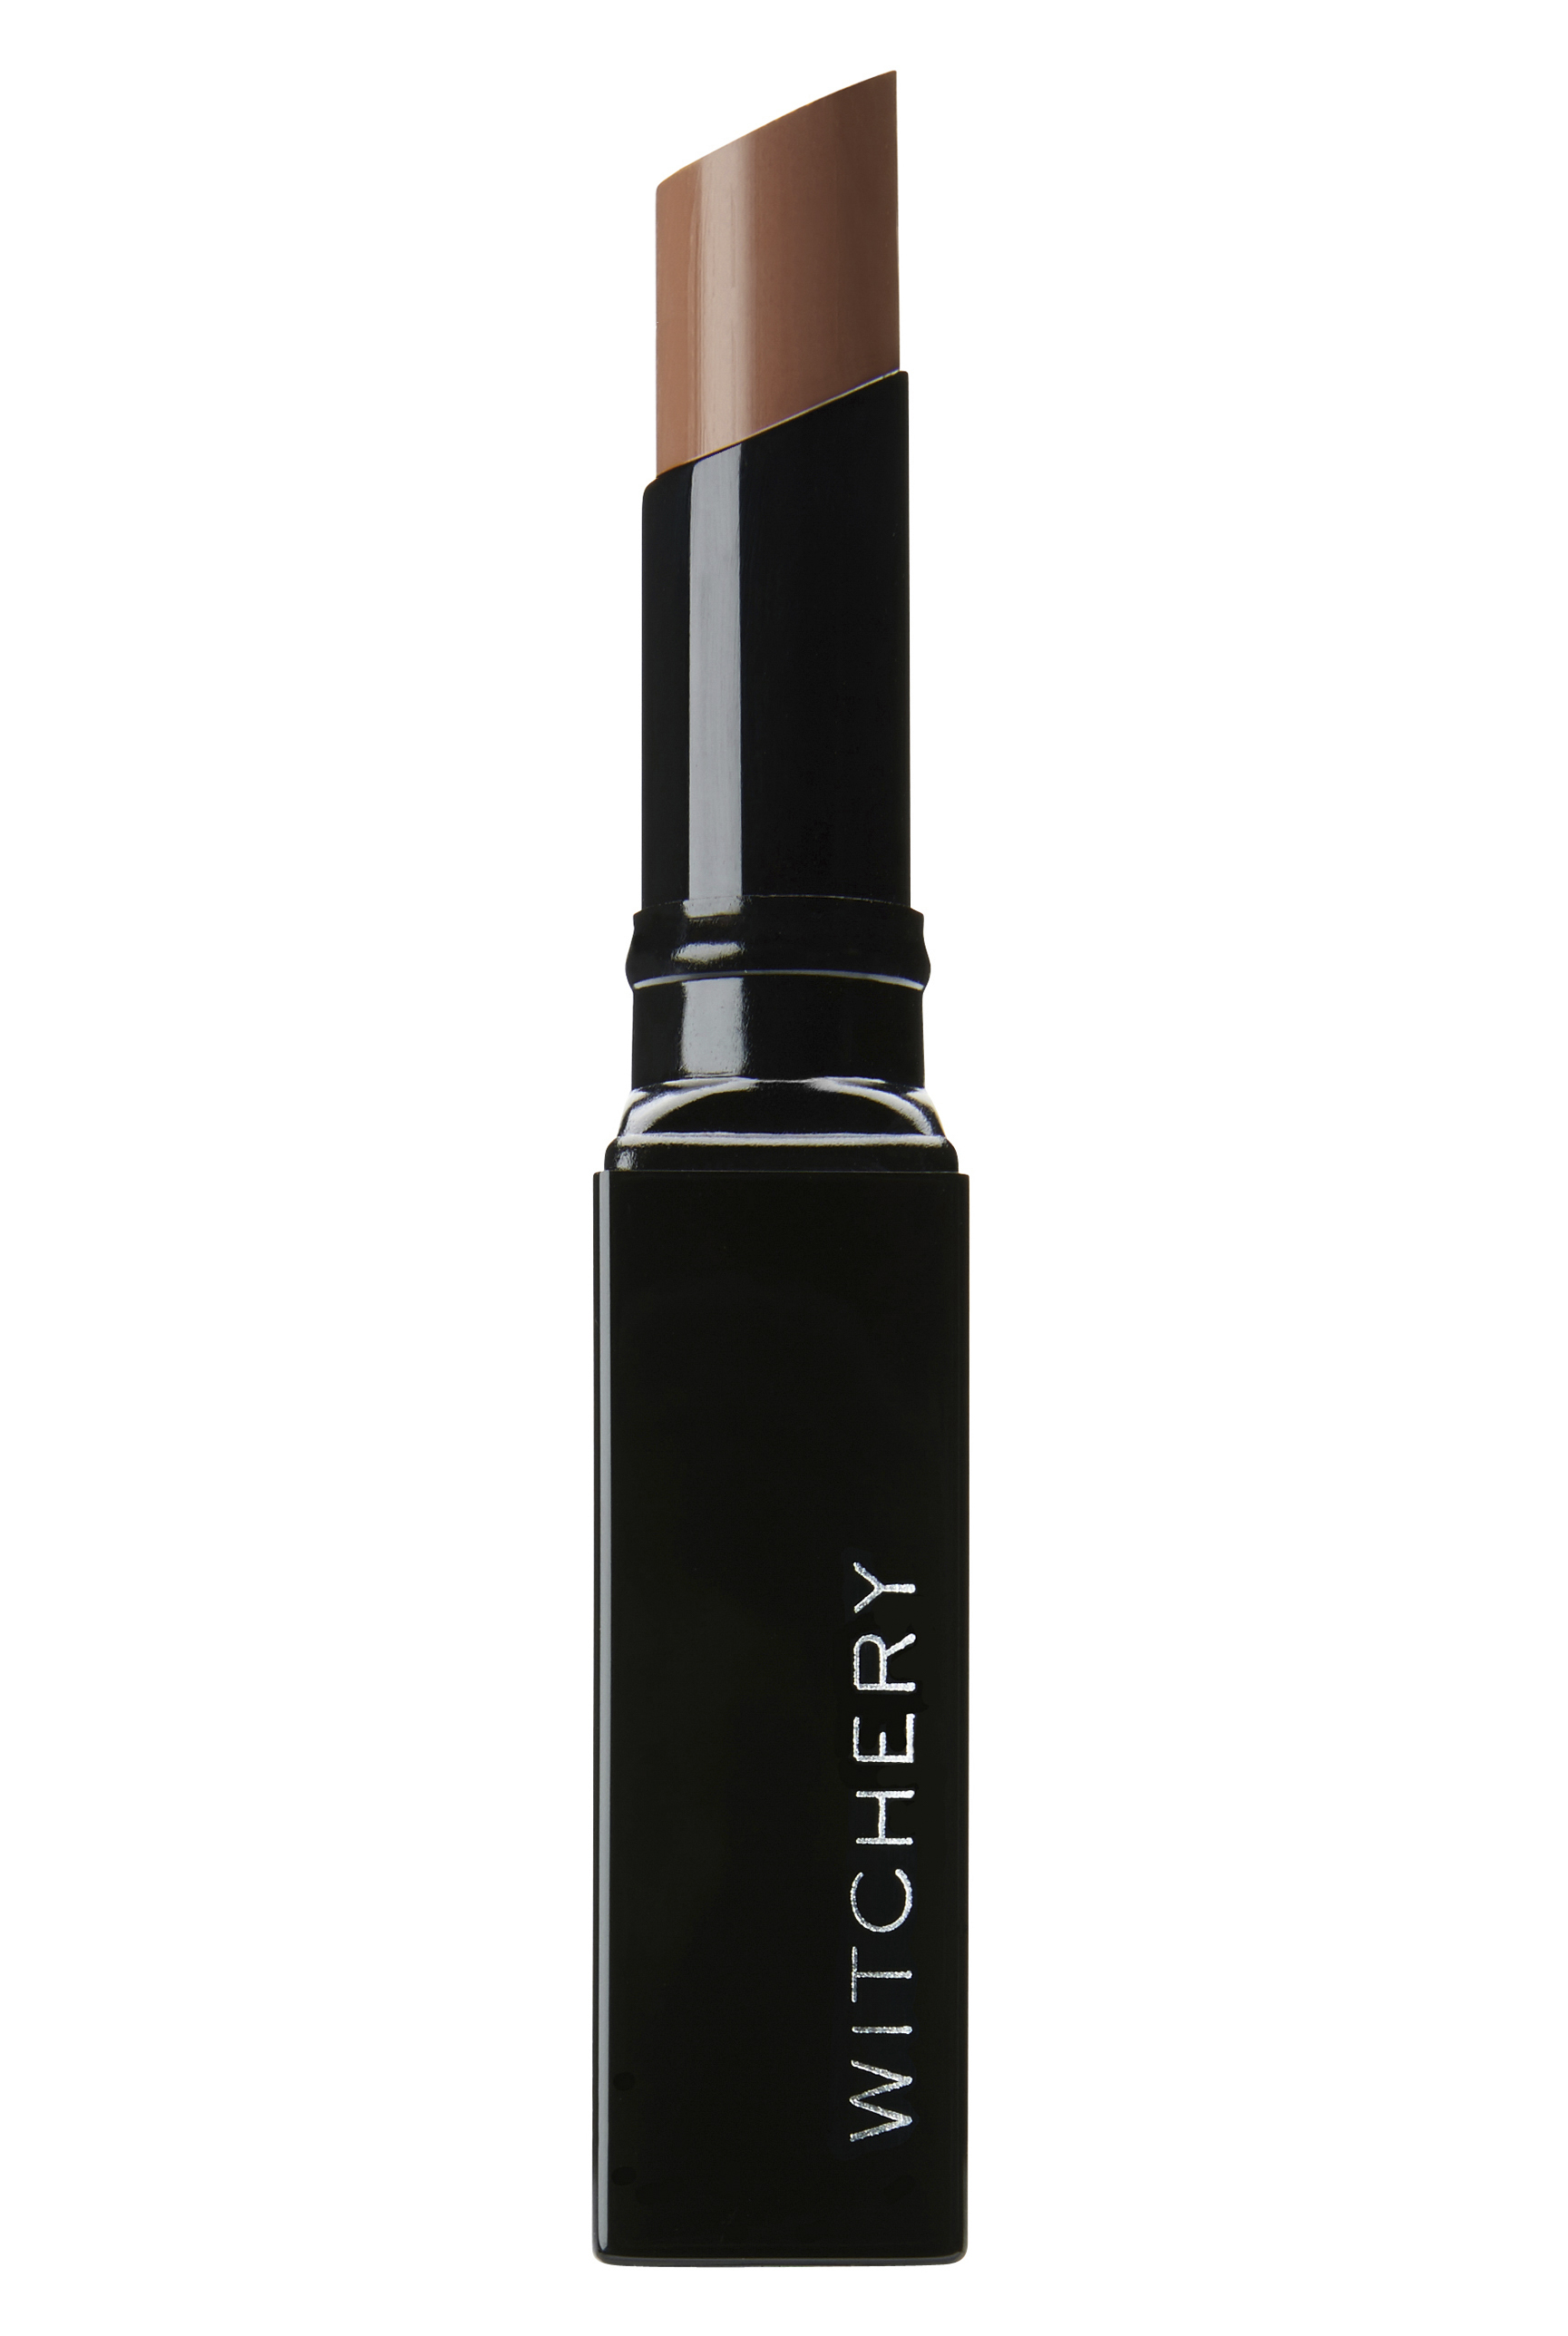 60197343_witchery-beauty-matte-lipstick-in-chocolate-rrp18-90